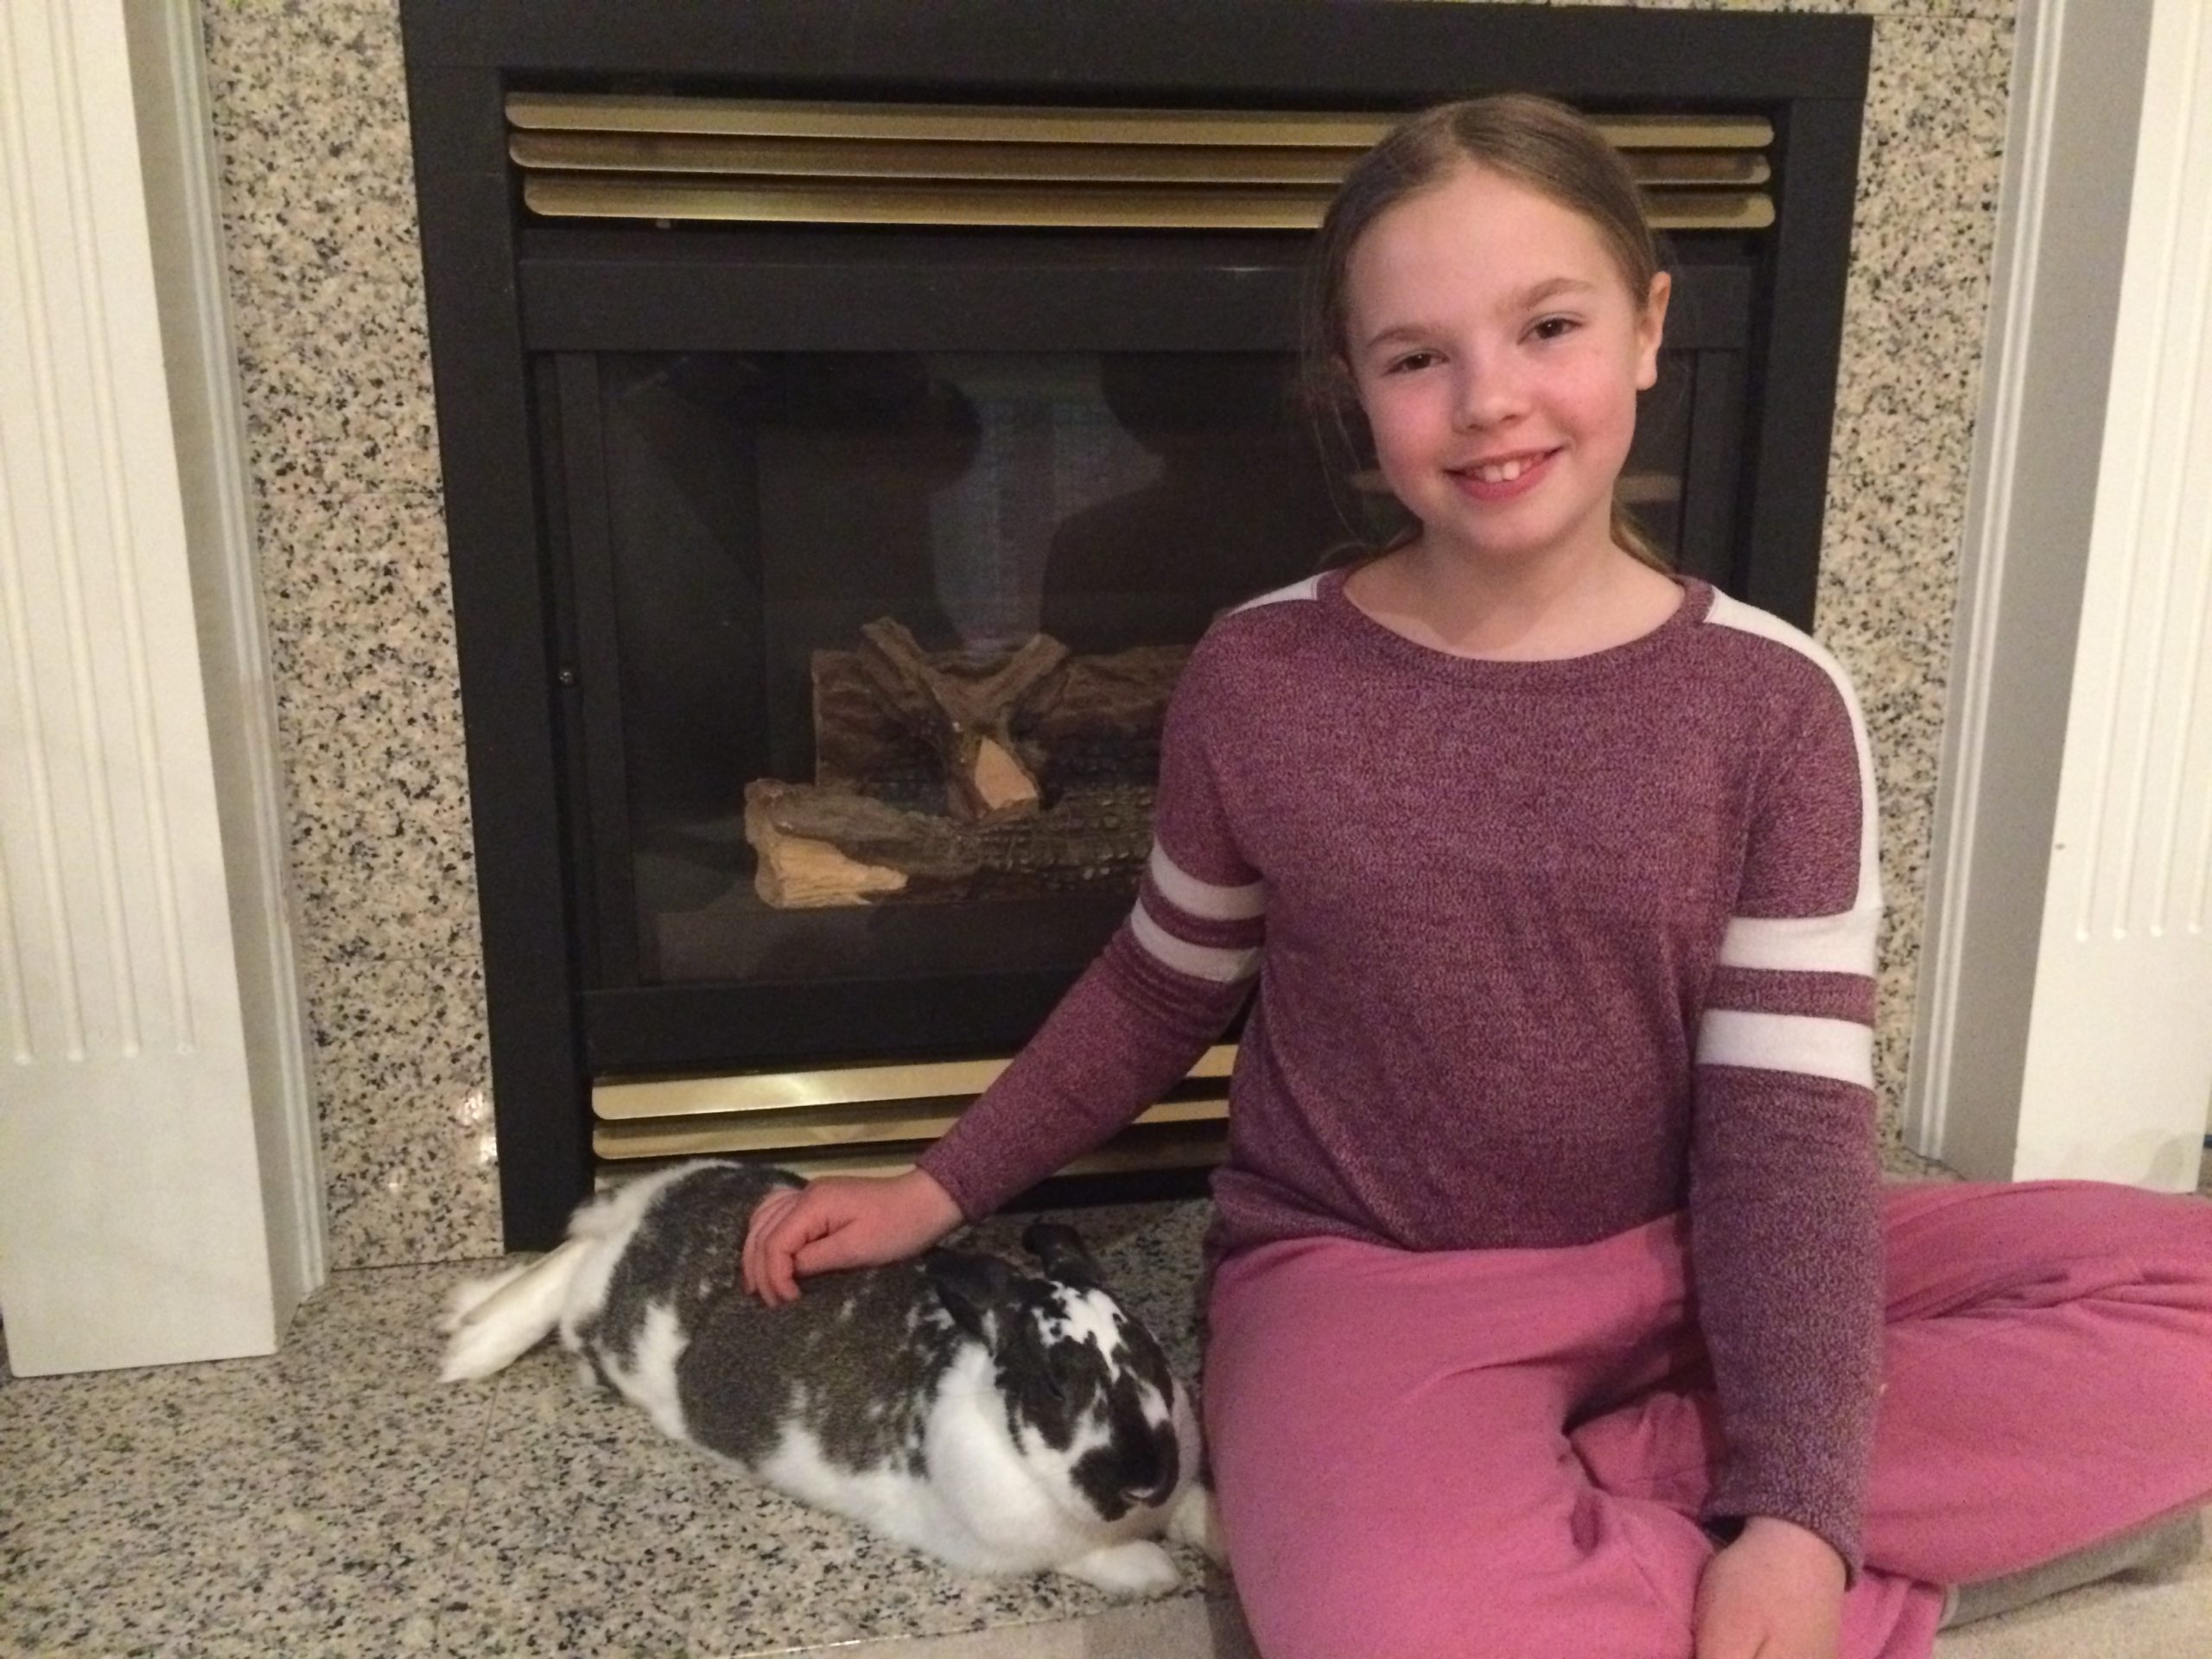 Member just relaxing with her 4-H rabbit